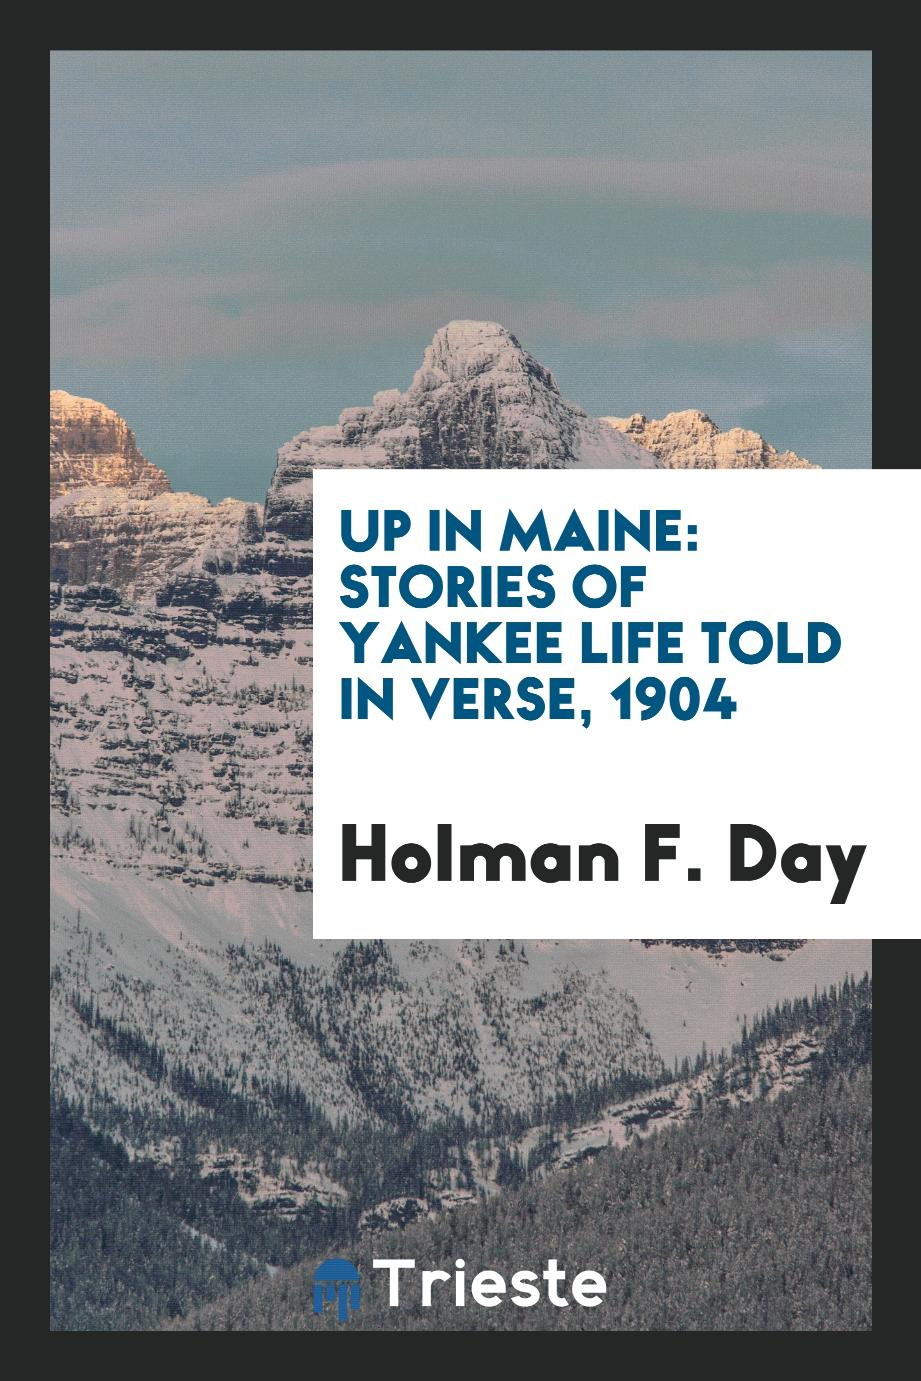 Up in Maine: Stories of Yankee Life Told in Verse, 1904